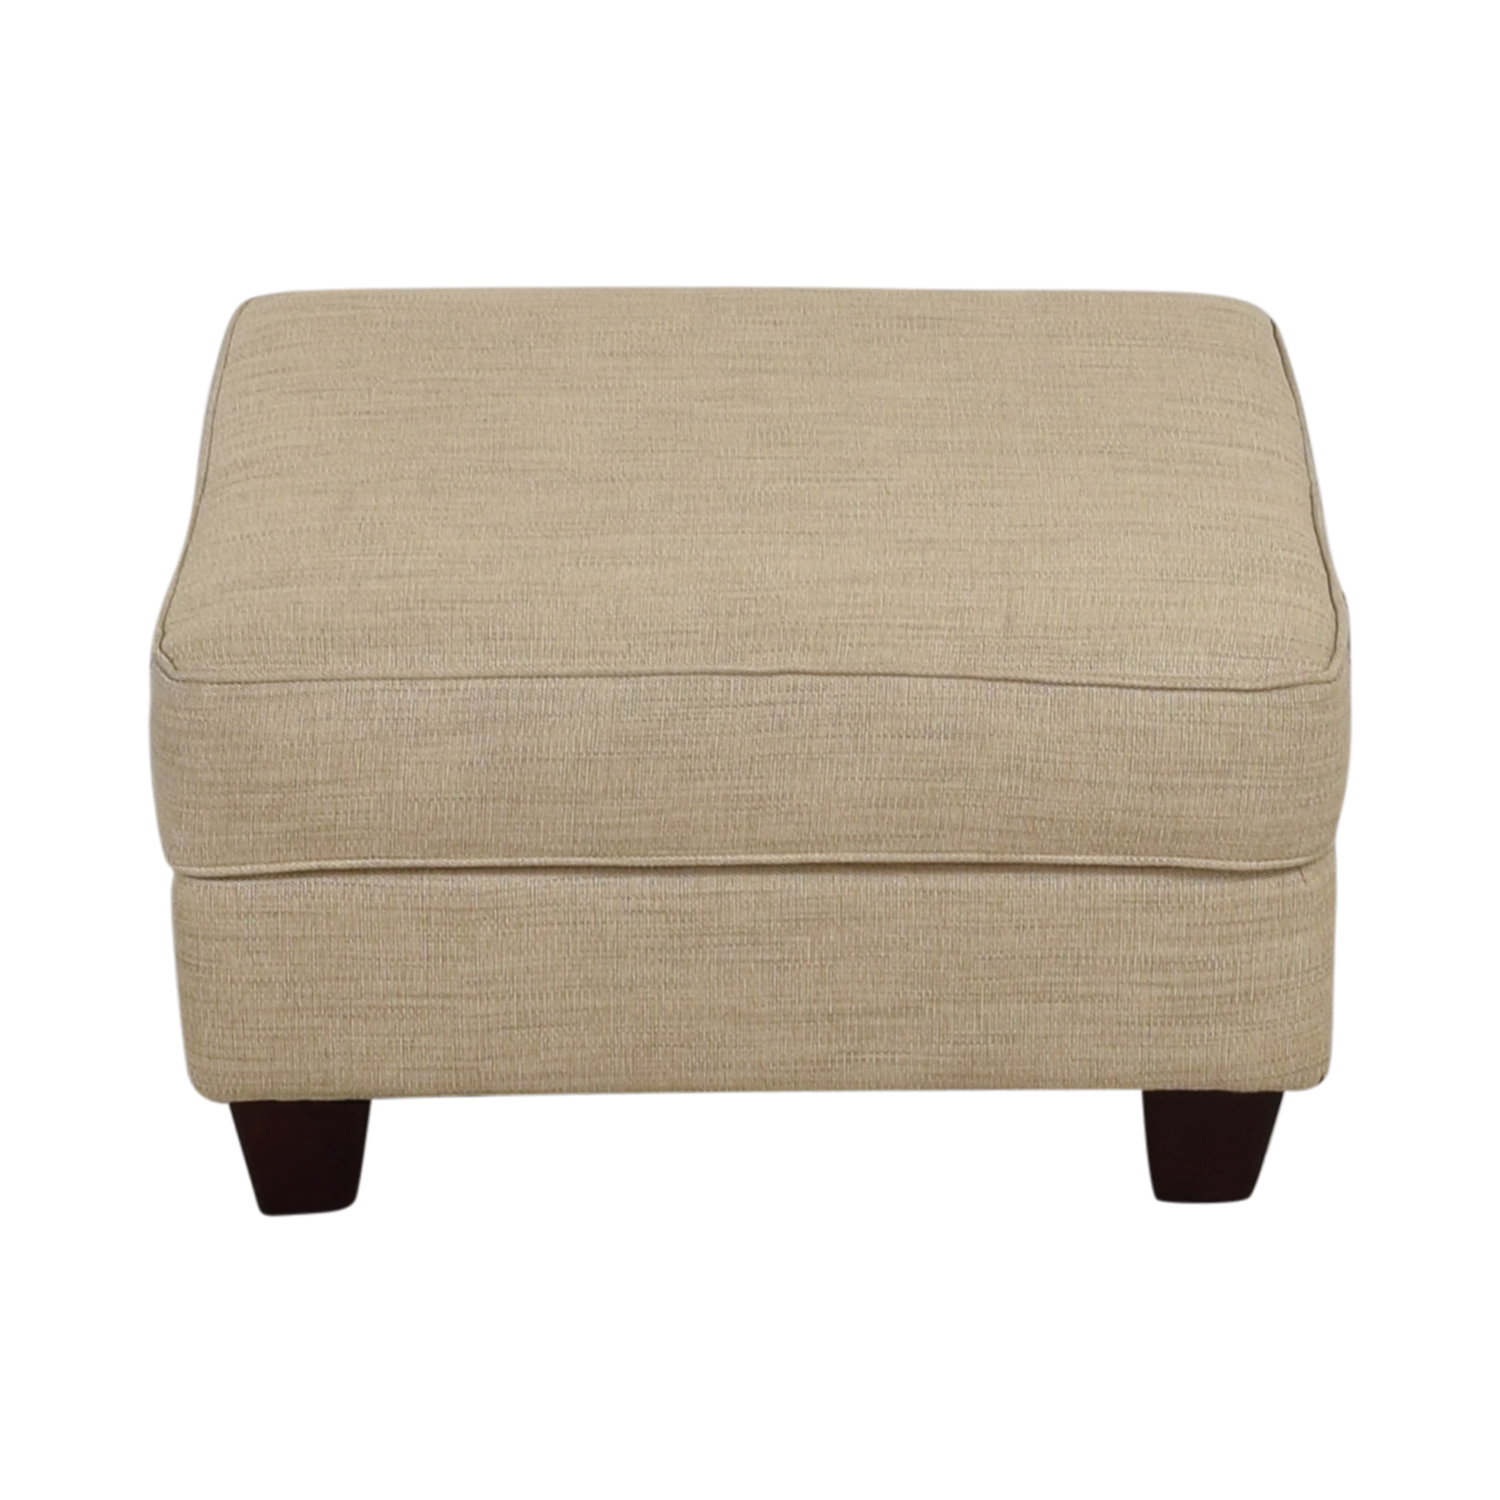 shop Bobs Furniture Colby Tan Ottoman with Storage Bobs Furniture Ottomans